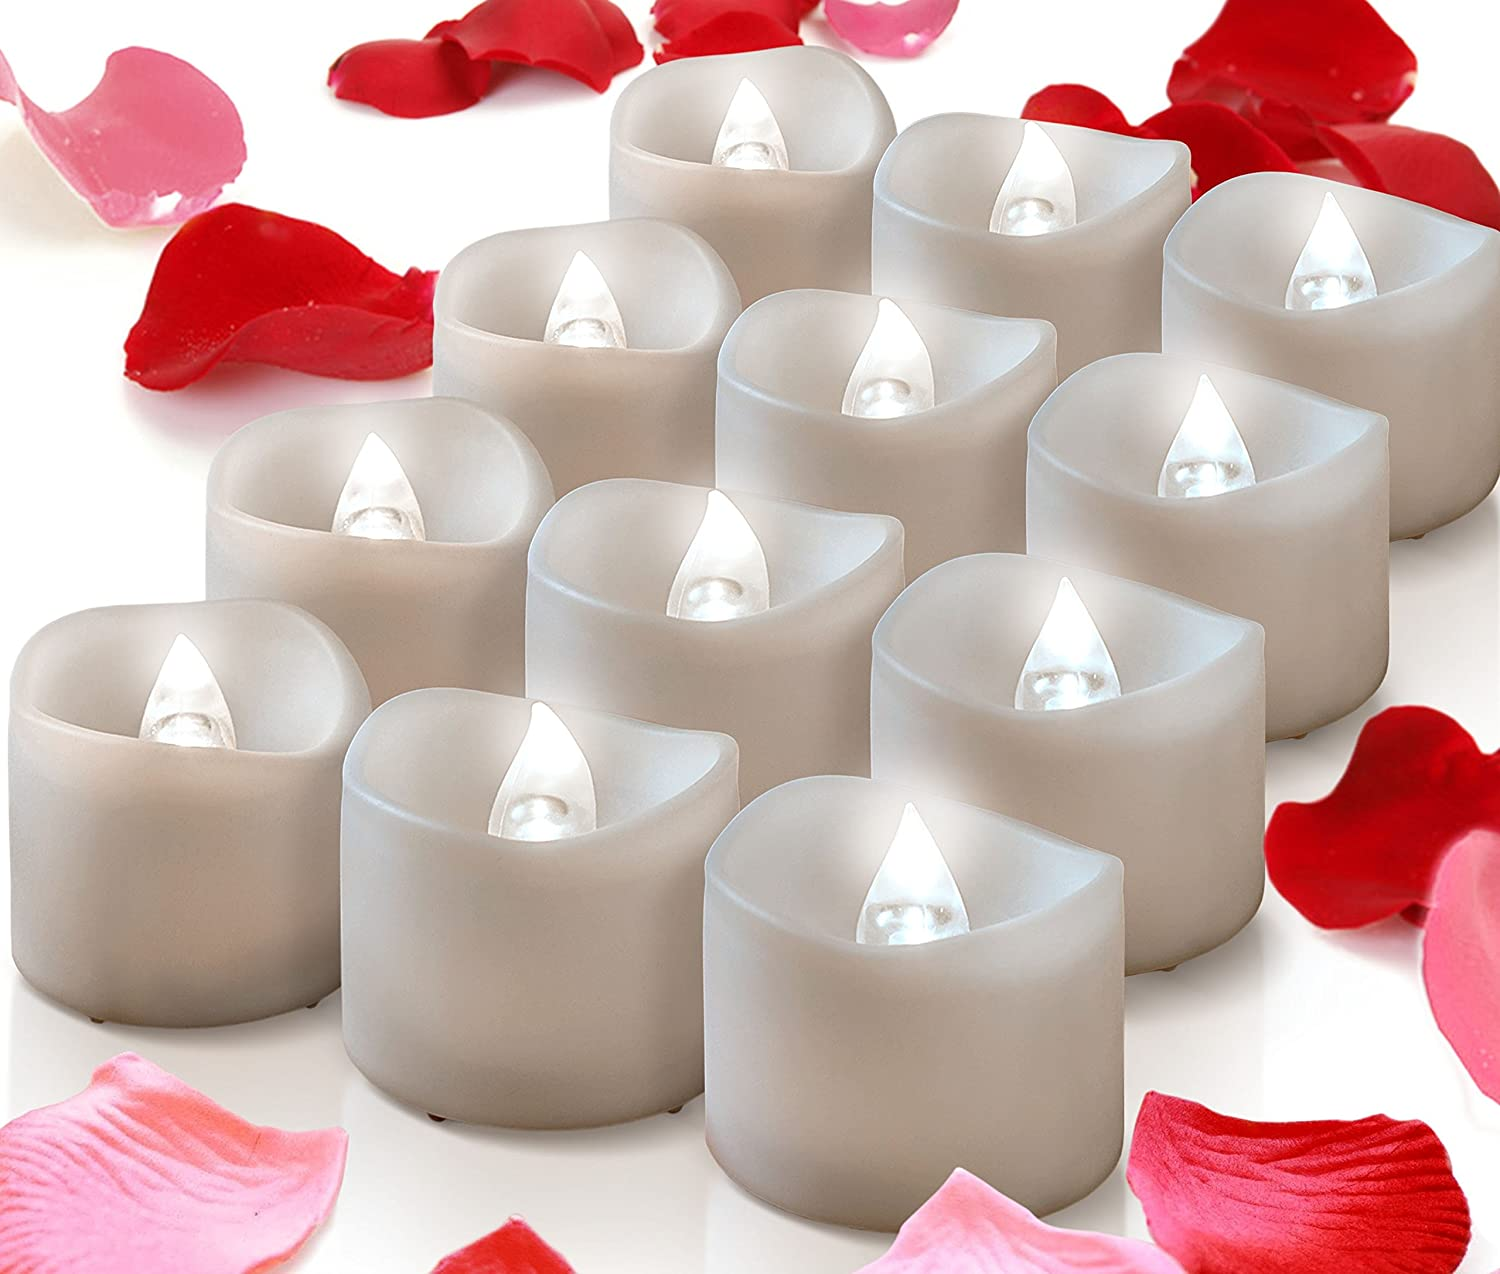 12 White Bright Battery Operated Tea Lights + Romantic Unscented Fake Rose Petals Bulk